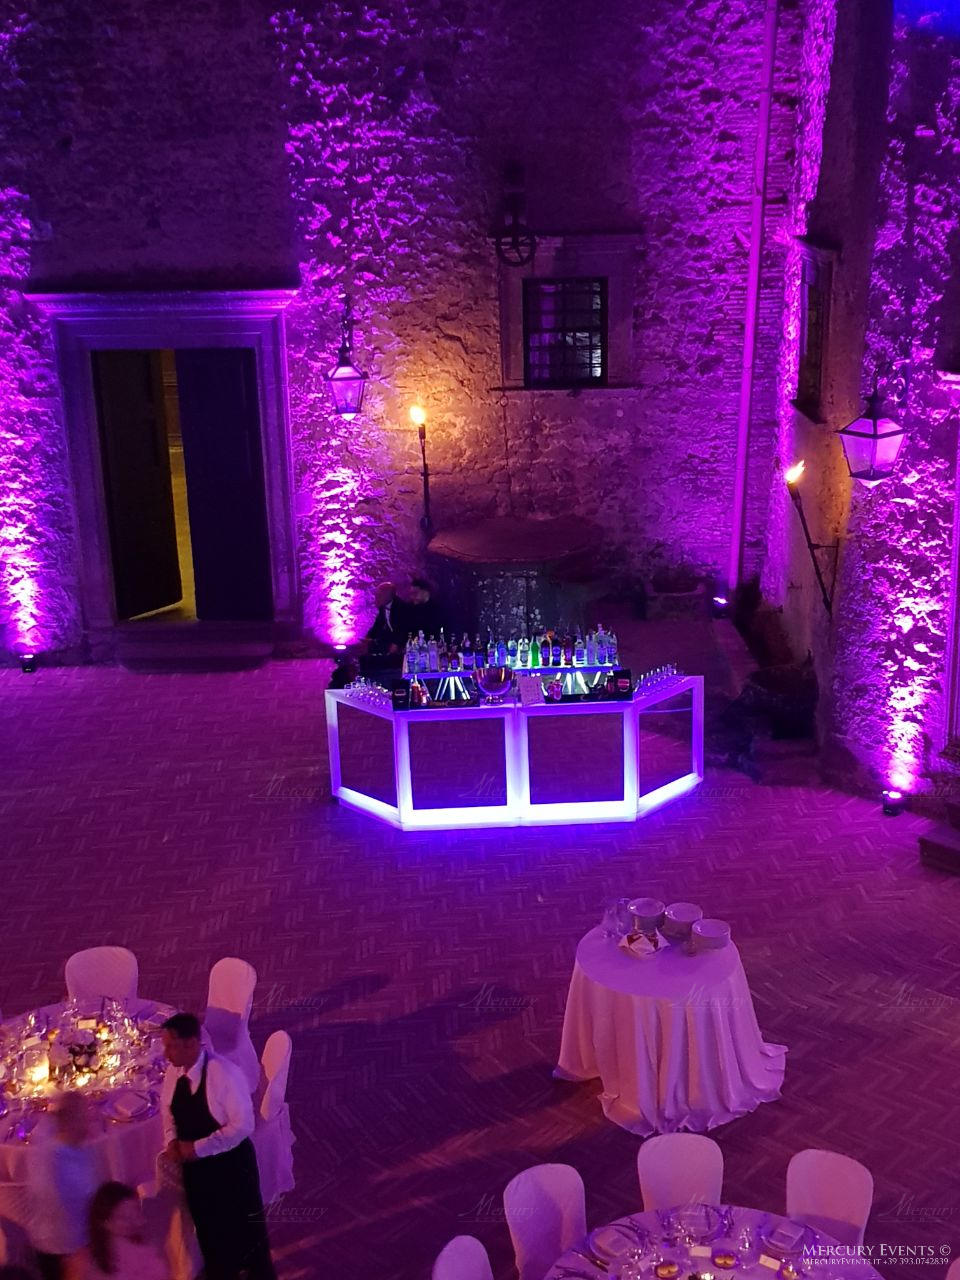 Wedding - Castello Odelschalchi di Bracciano - Mercury Events 4